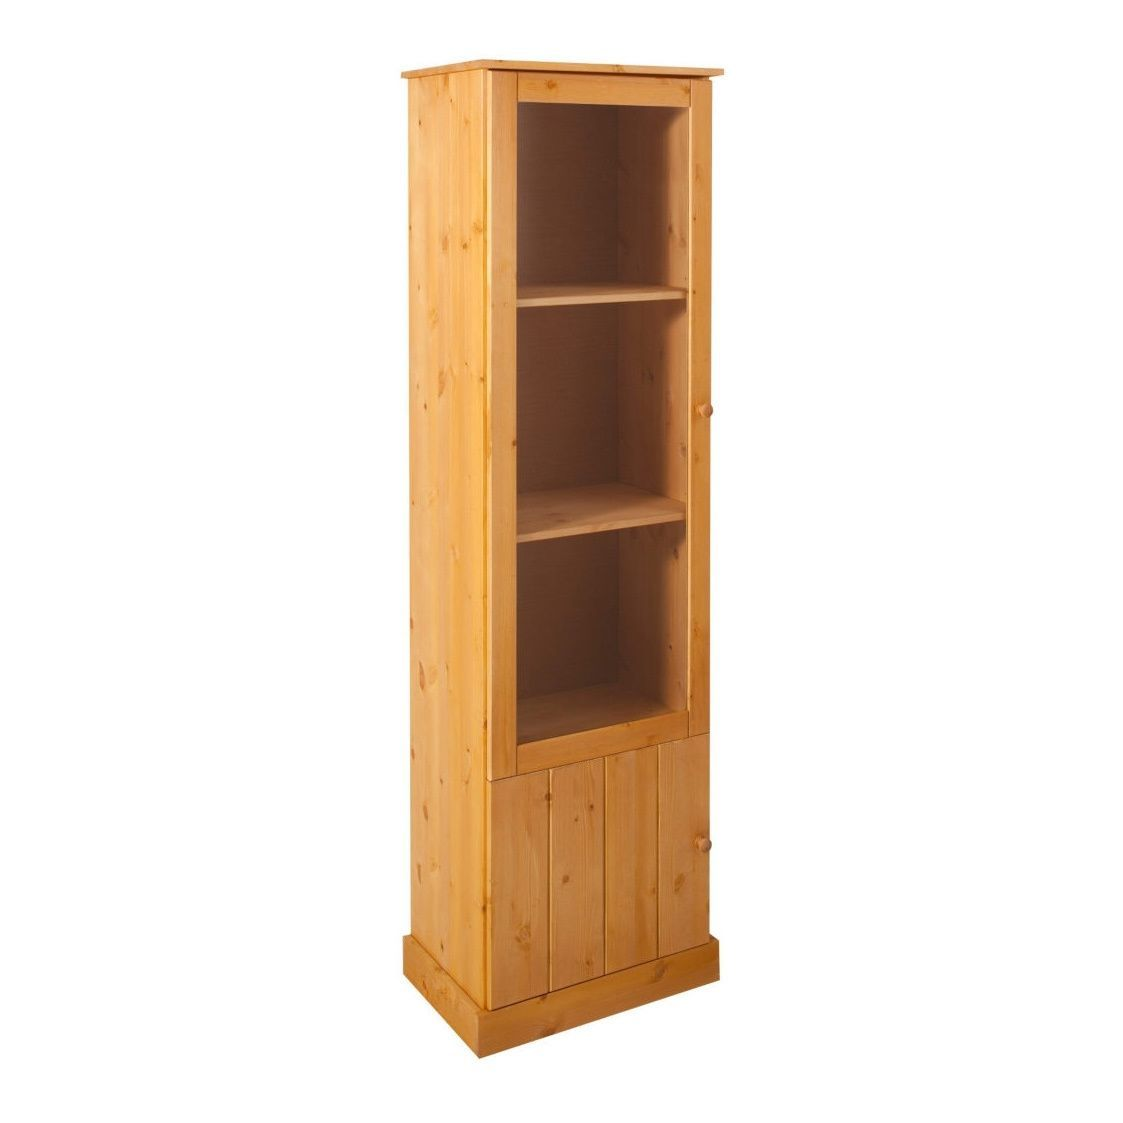 Scandinavian Lifestyle Chicago Cabinet, solid pine (Stain/wax), Tan